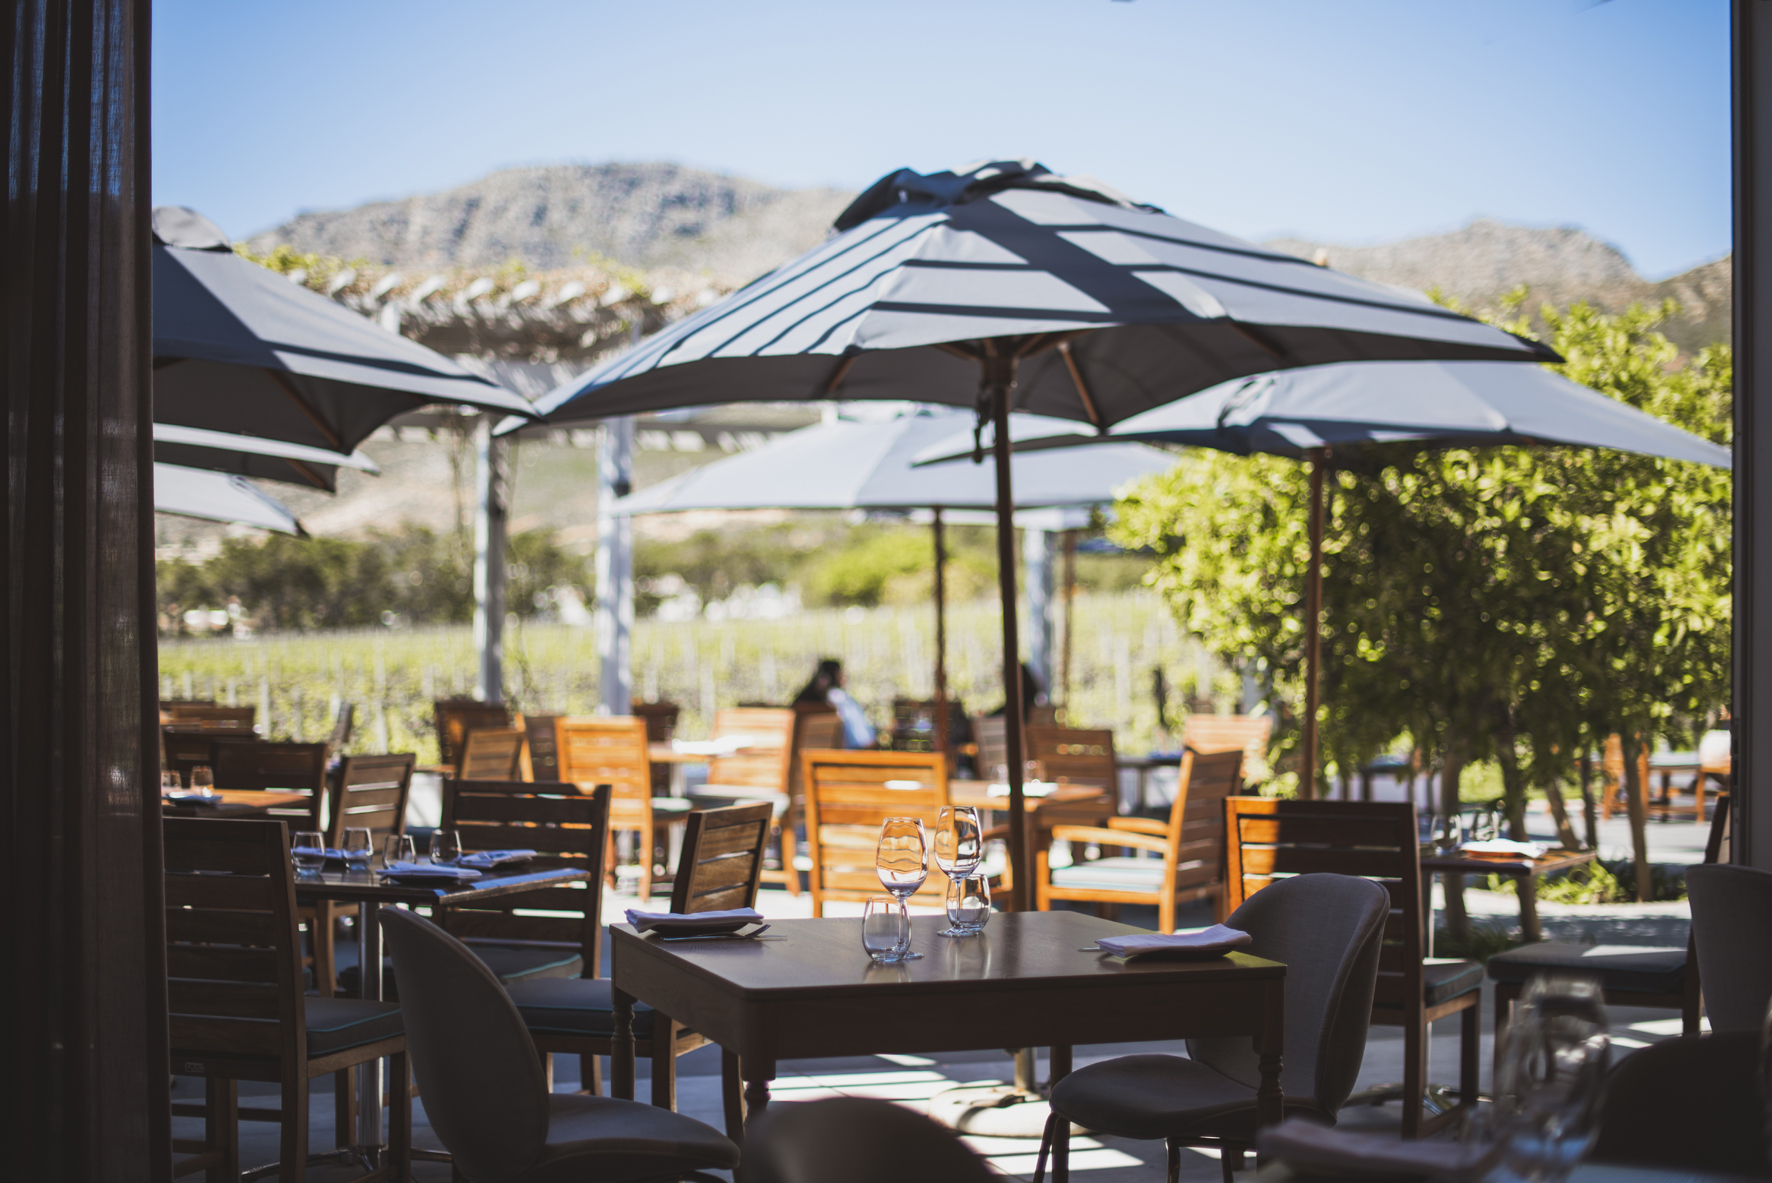 Alfresco breakfast lunch Tryn Steenberg Sonia Cabano blog eatdrinkcapetown